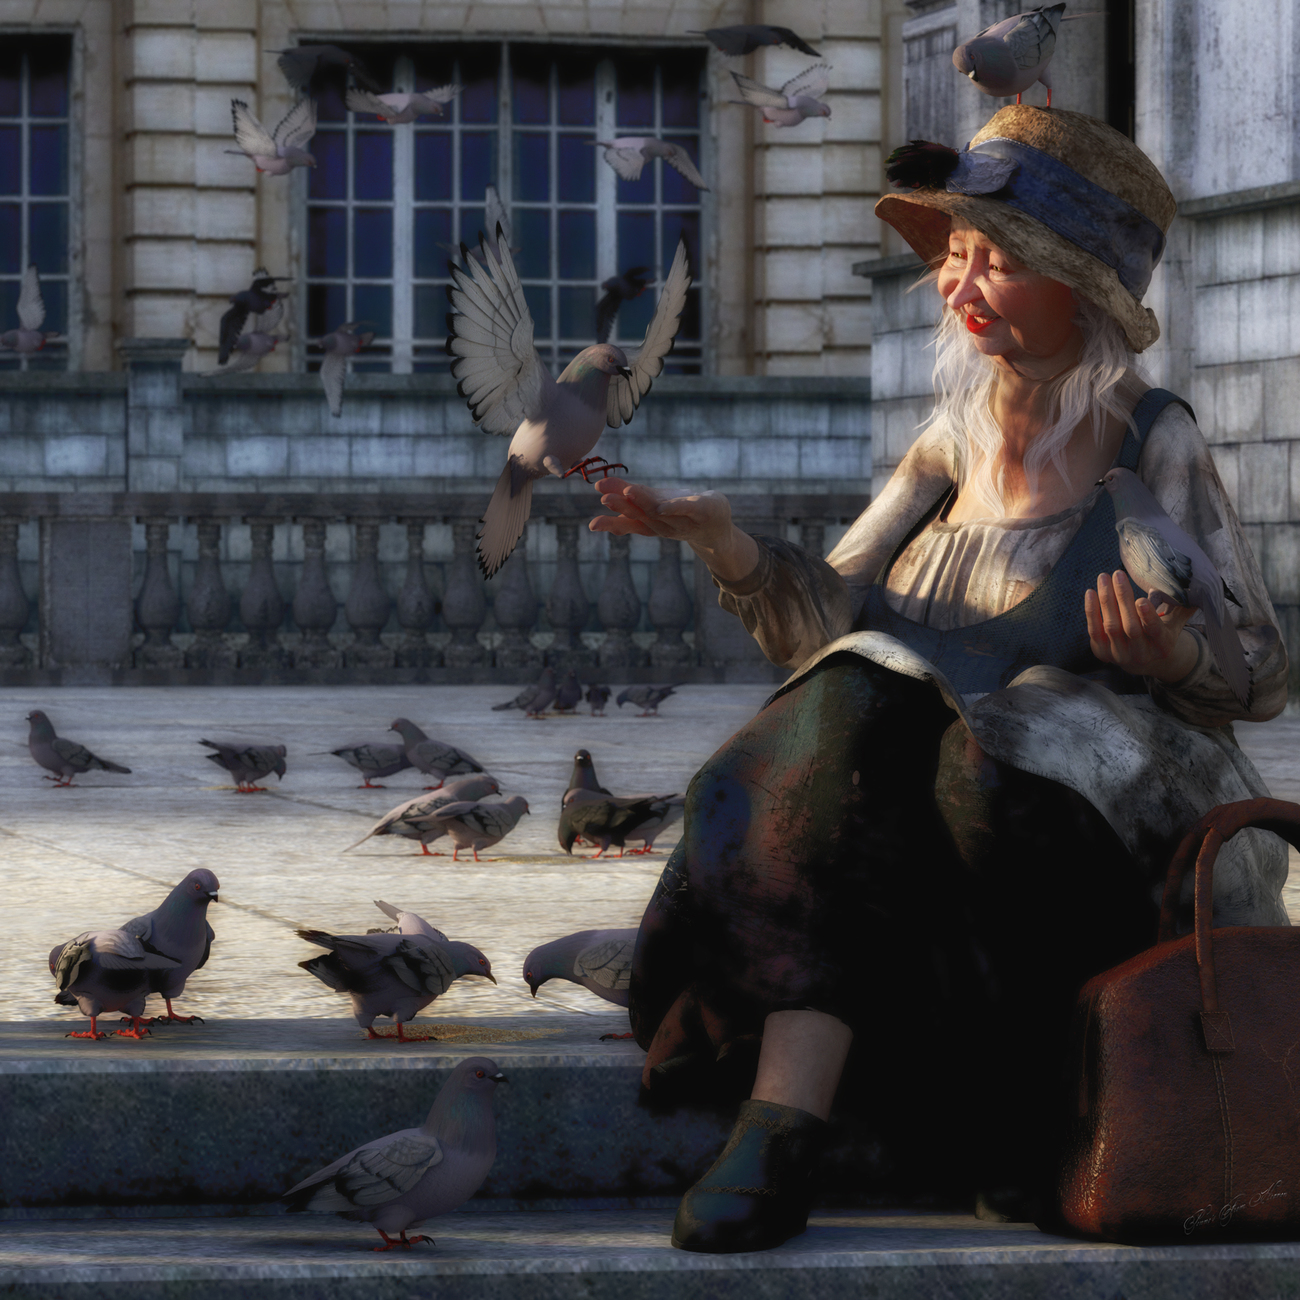 Feed the Birds by dollmommy